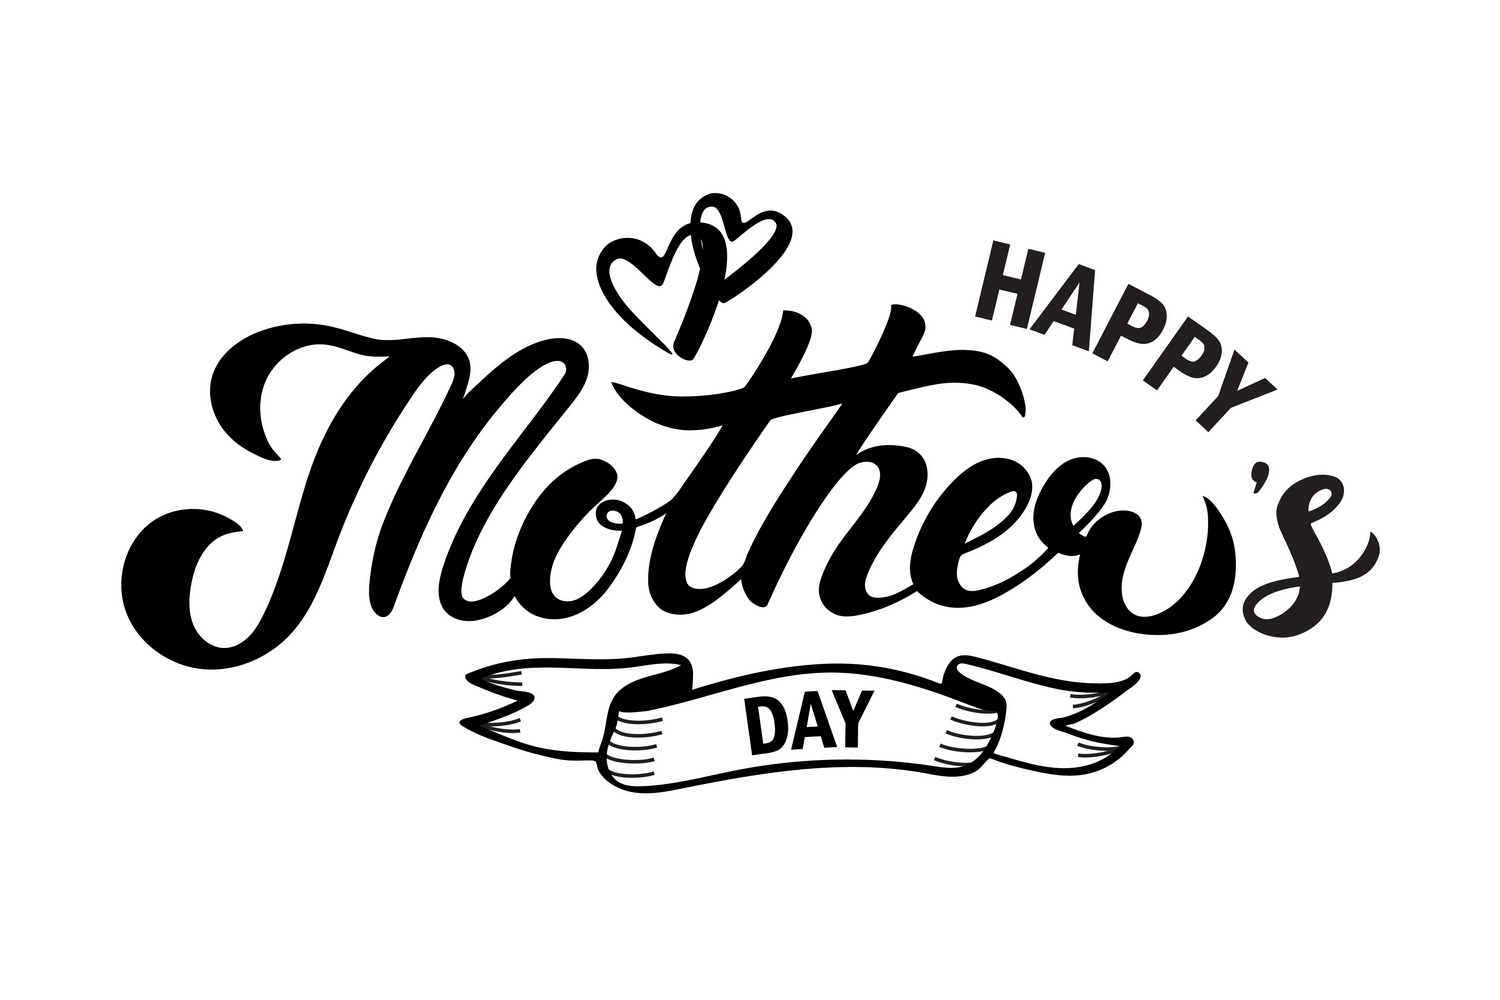 Happy Mother's Day Cards example image 1